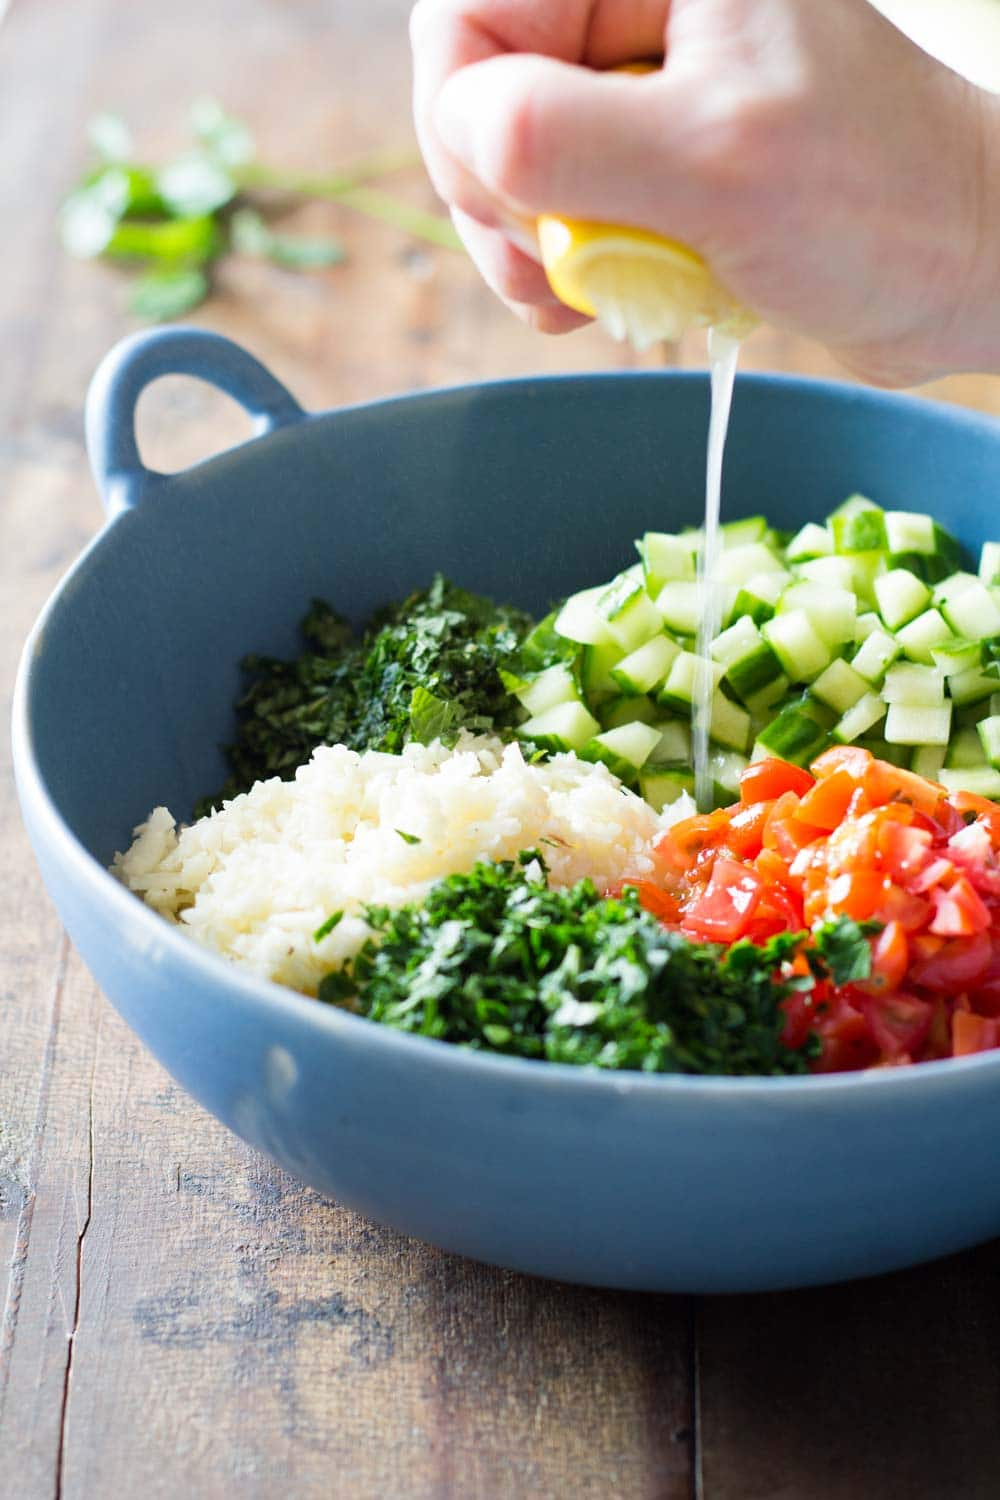 Cauliflower couscous with chopped parsley, diced cucumber and tomatoes in a blue bowl, with a hand squeezing a lime over it.